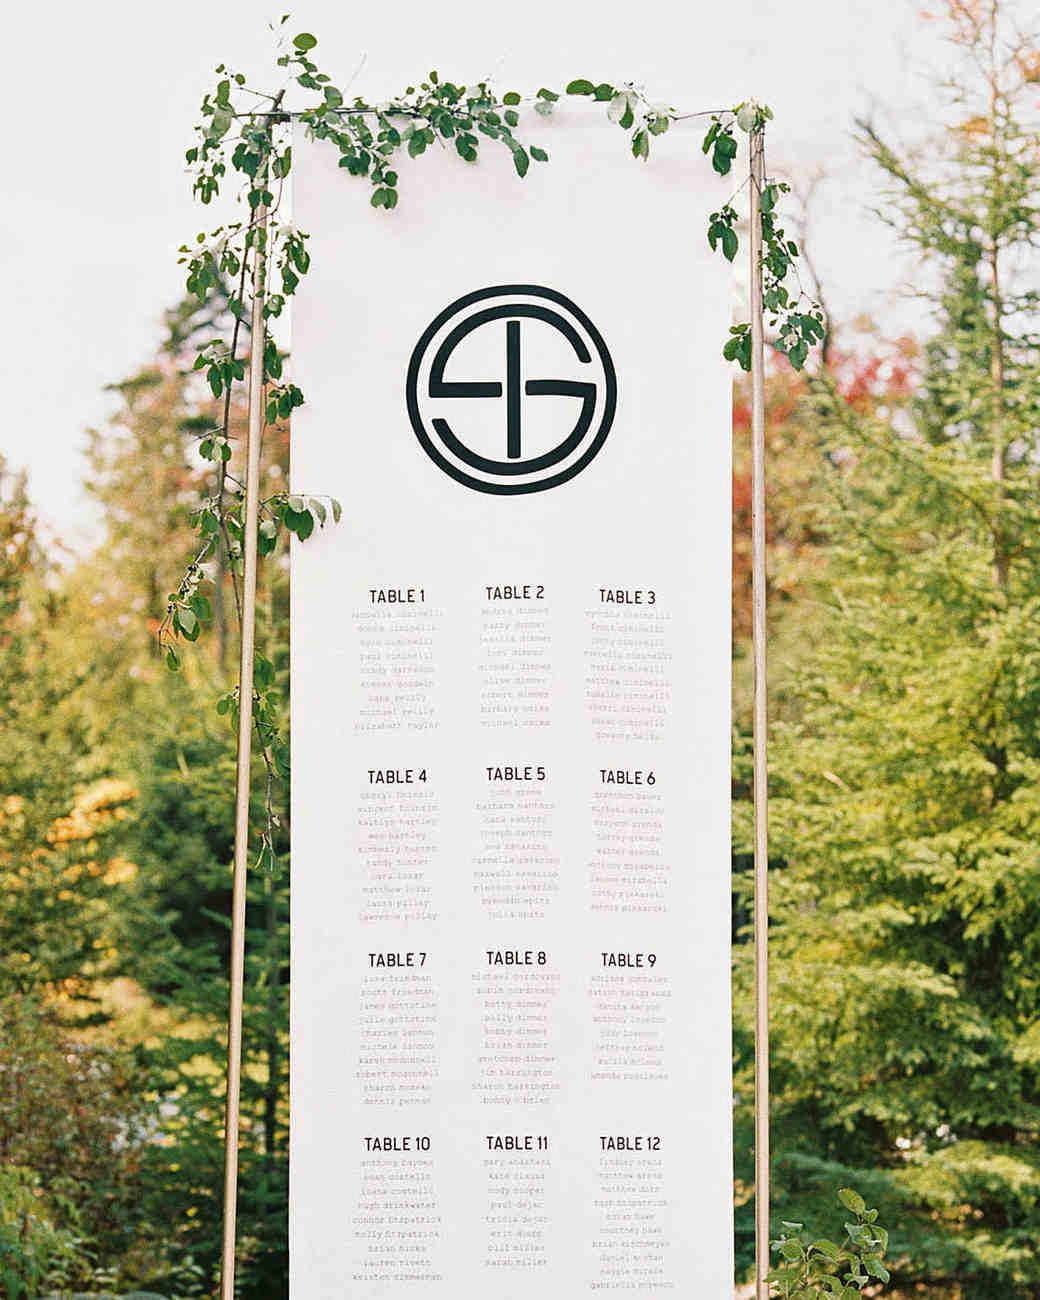 tory sean wedding lake placid new york seating chart